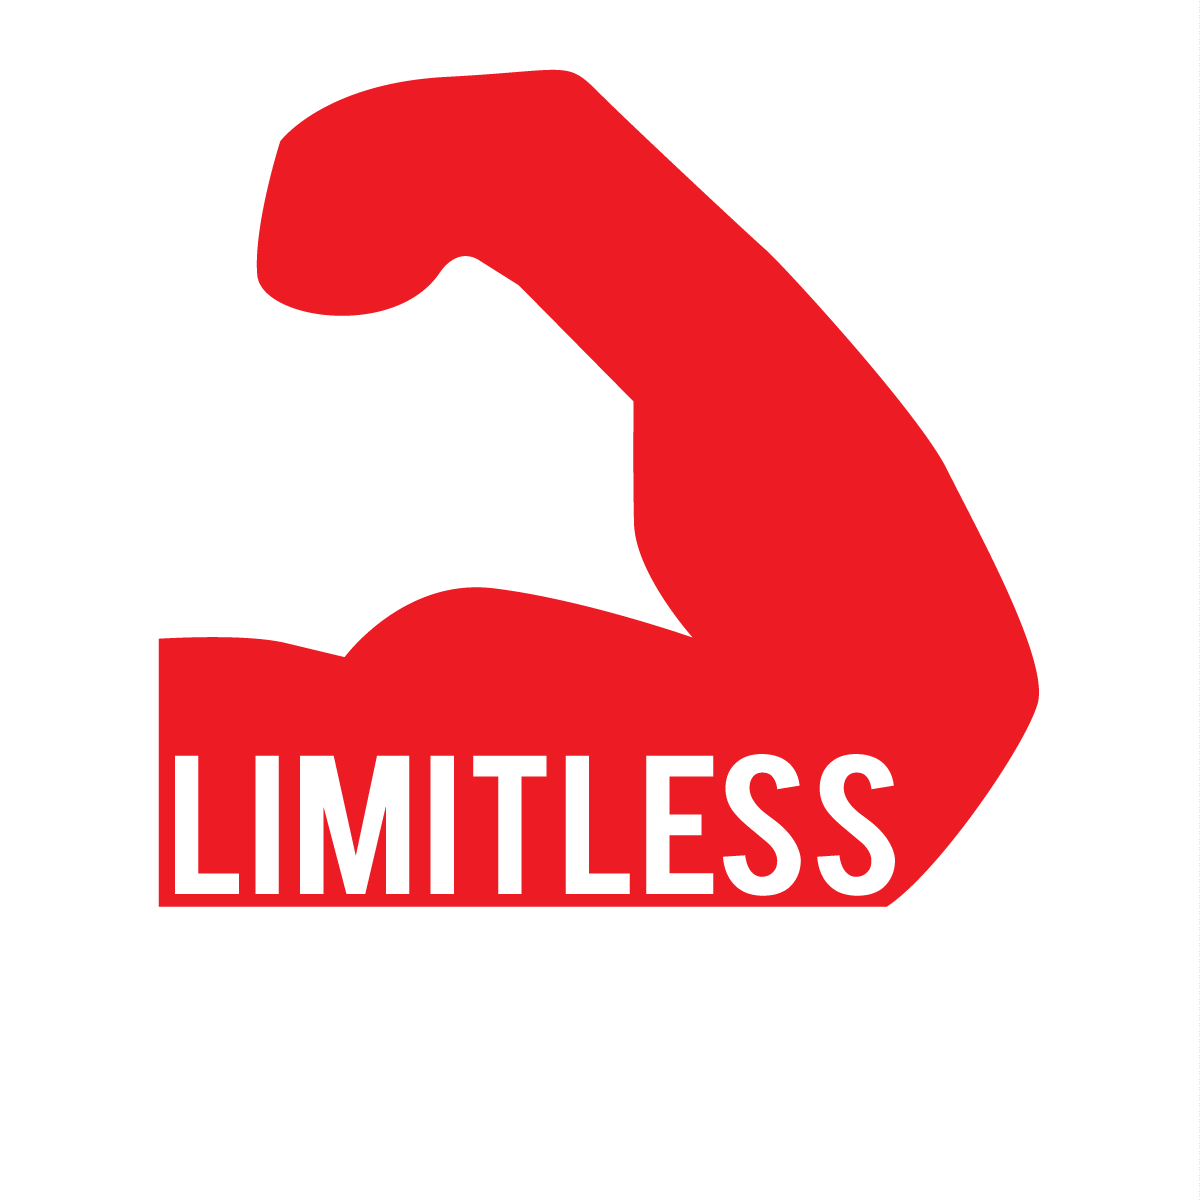 LIMITLESS SUPPLEMENTS